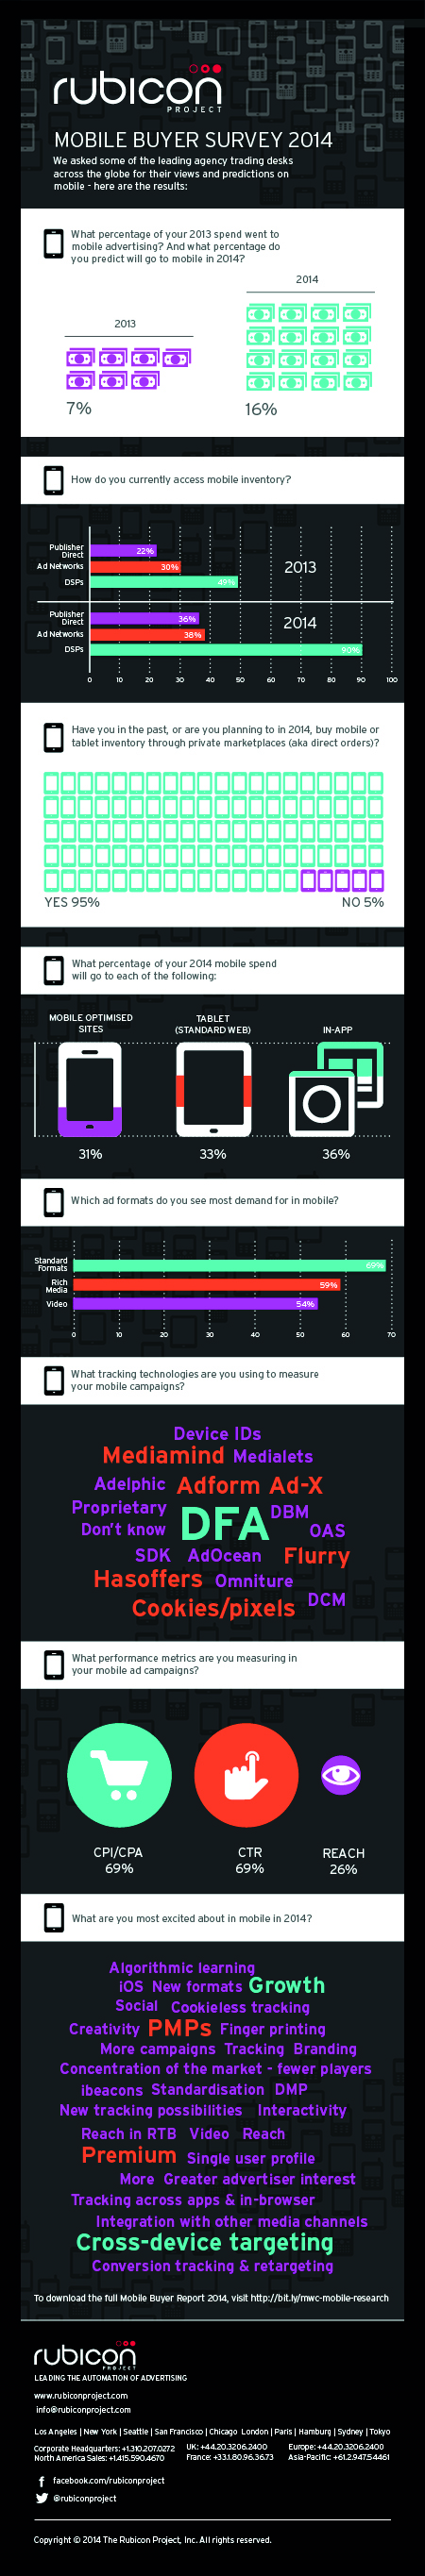 Mobile-Buyers-Survey-Infographic-2014